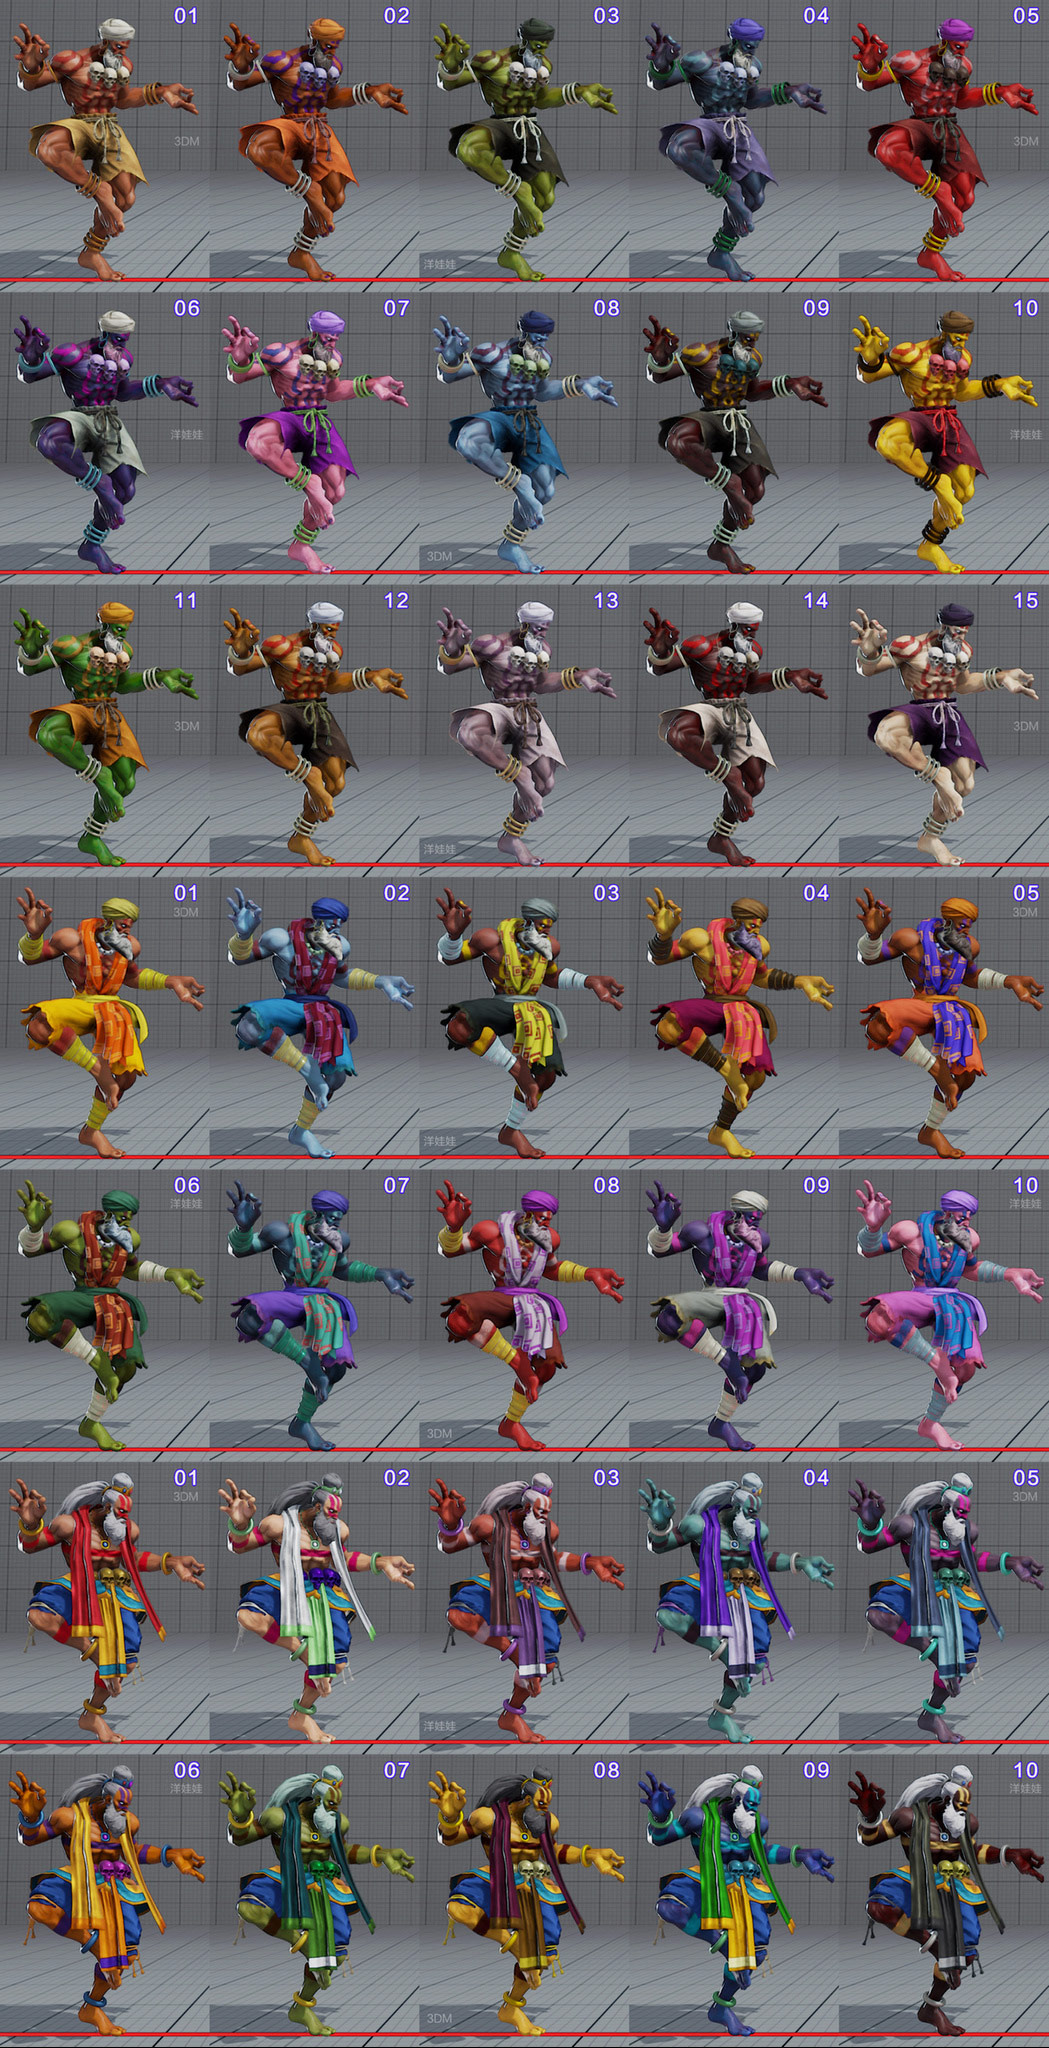 All colors for all current costumes in Street Fighter 5 5 out of 18 image gallery